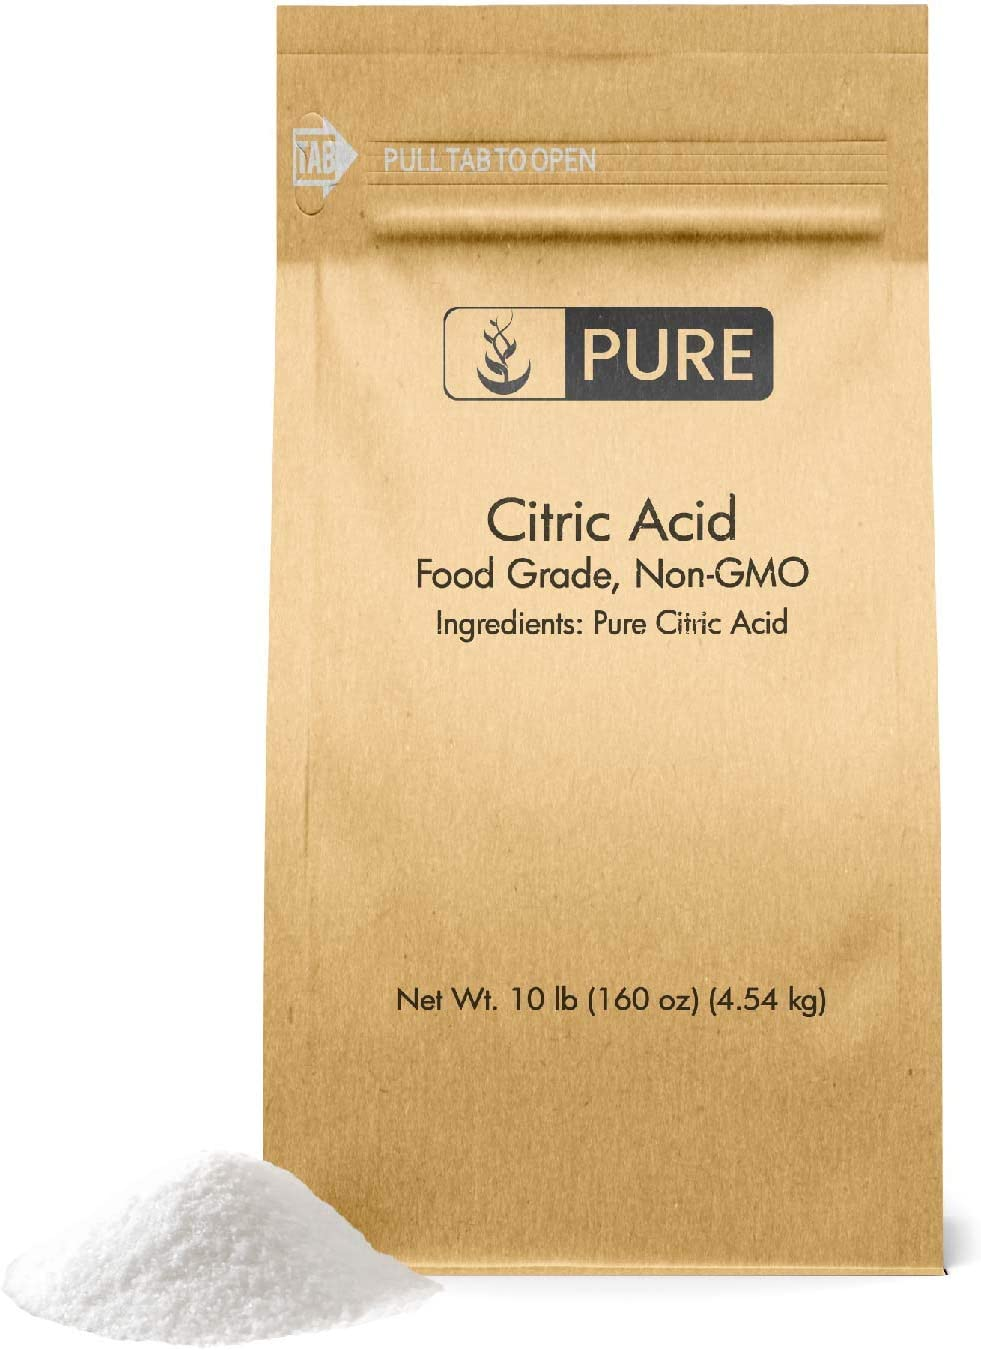 Citric Acid (10 lb.) by Pure, Eco-Friendly Packaging, All-Natural, Highest Quality, Pure, Food Safe, Non-GMO